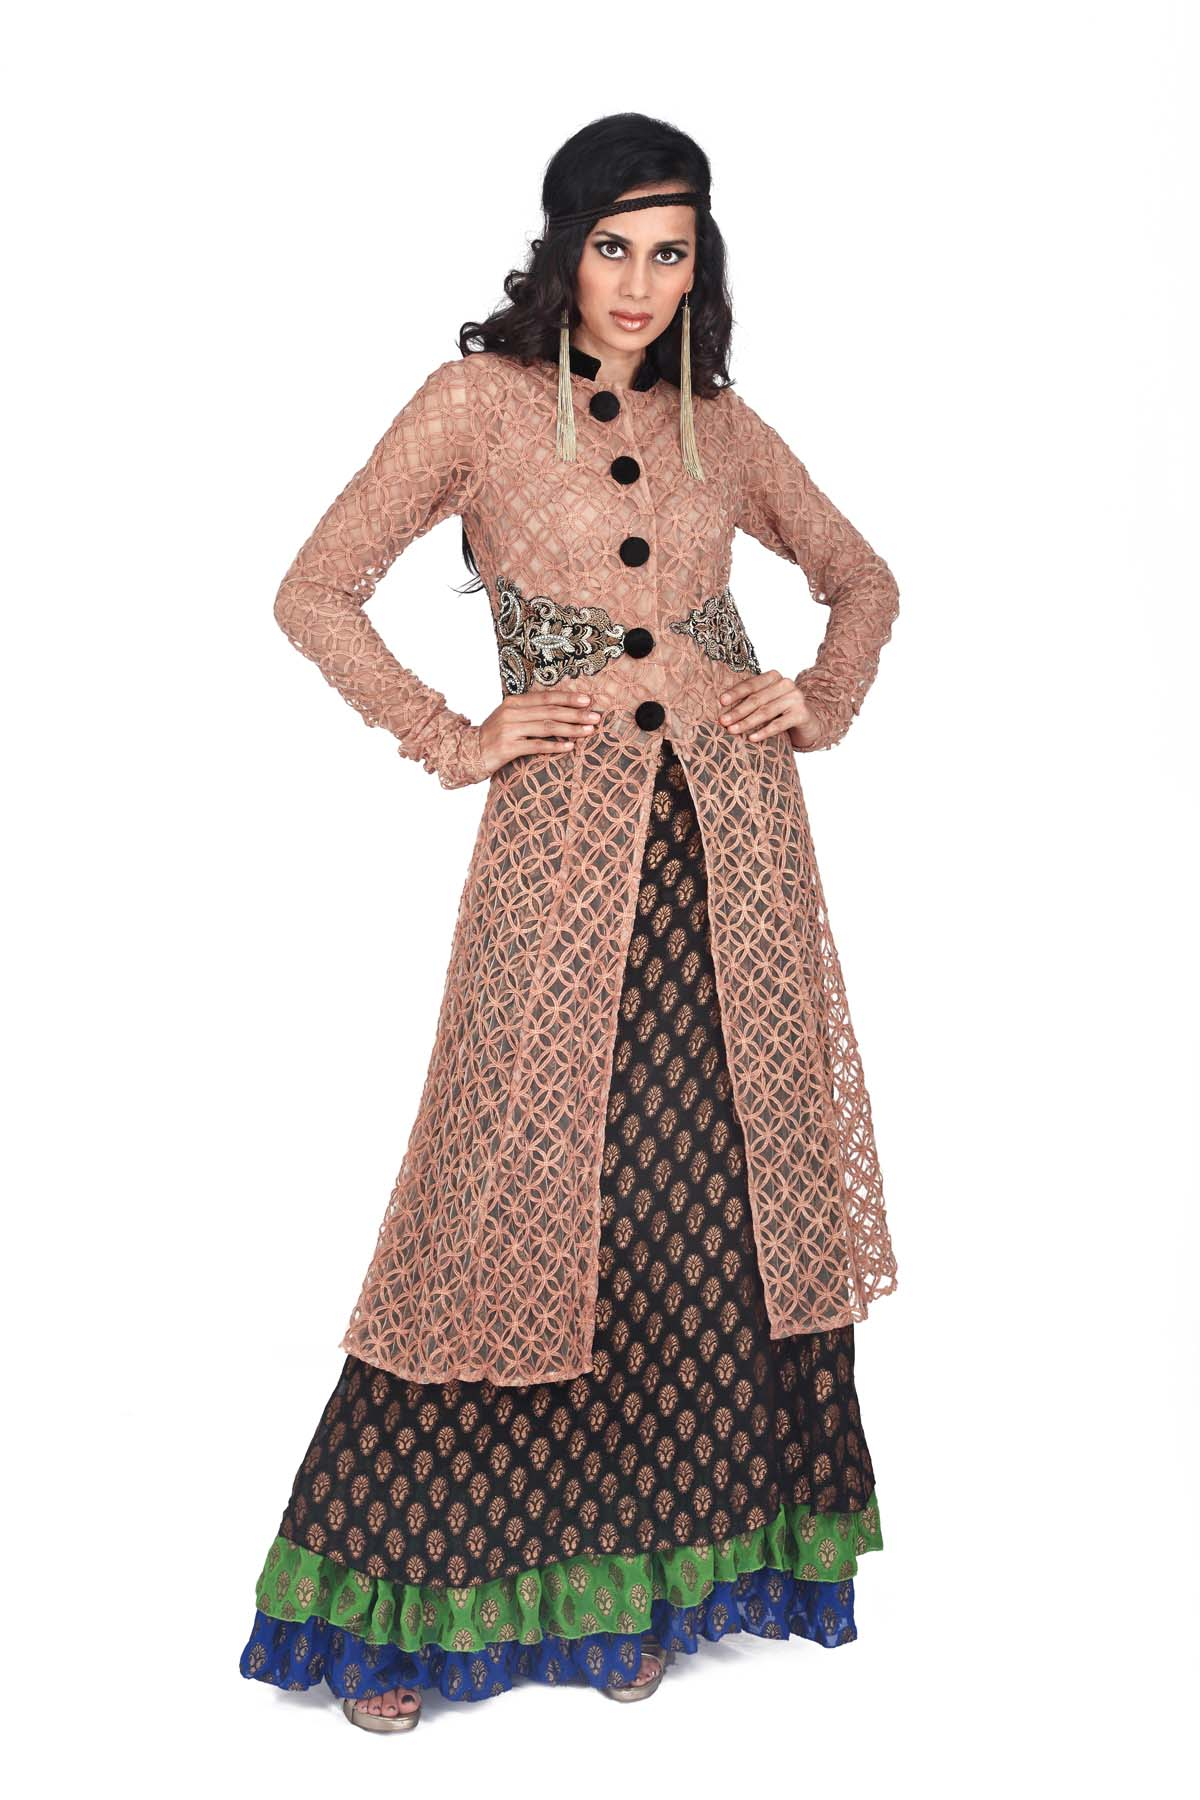 Designer Indian Clothes For Women as a women designer when